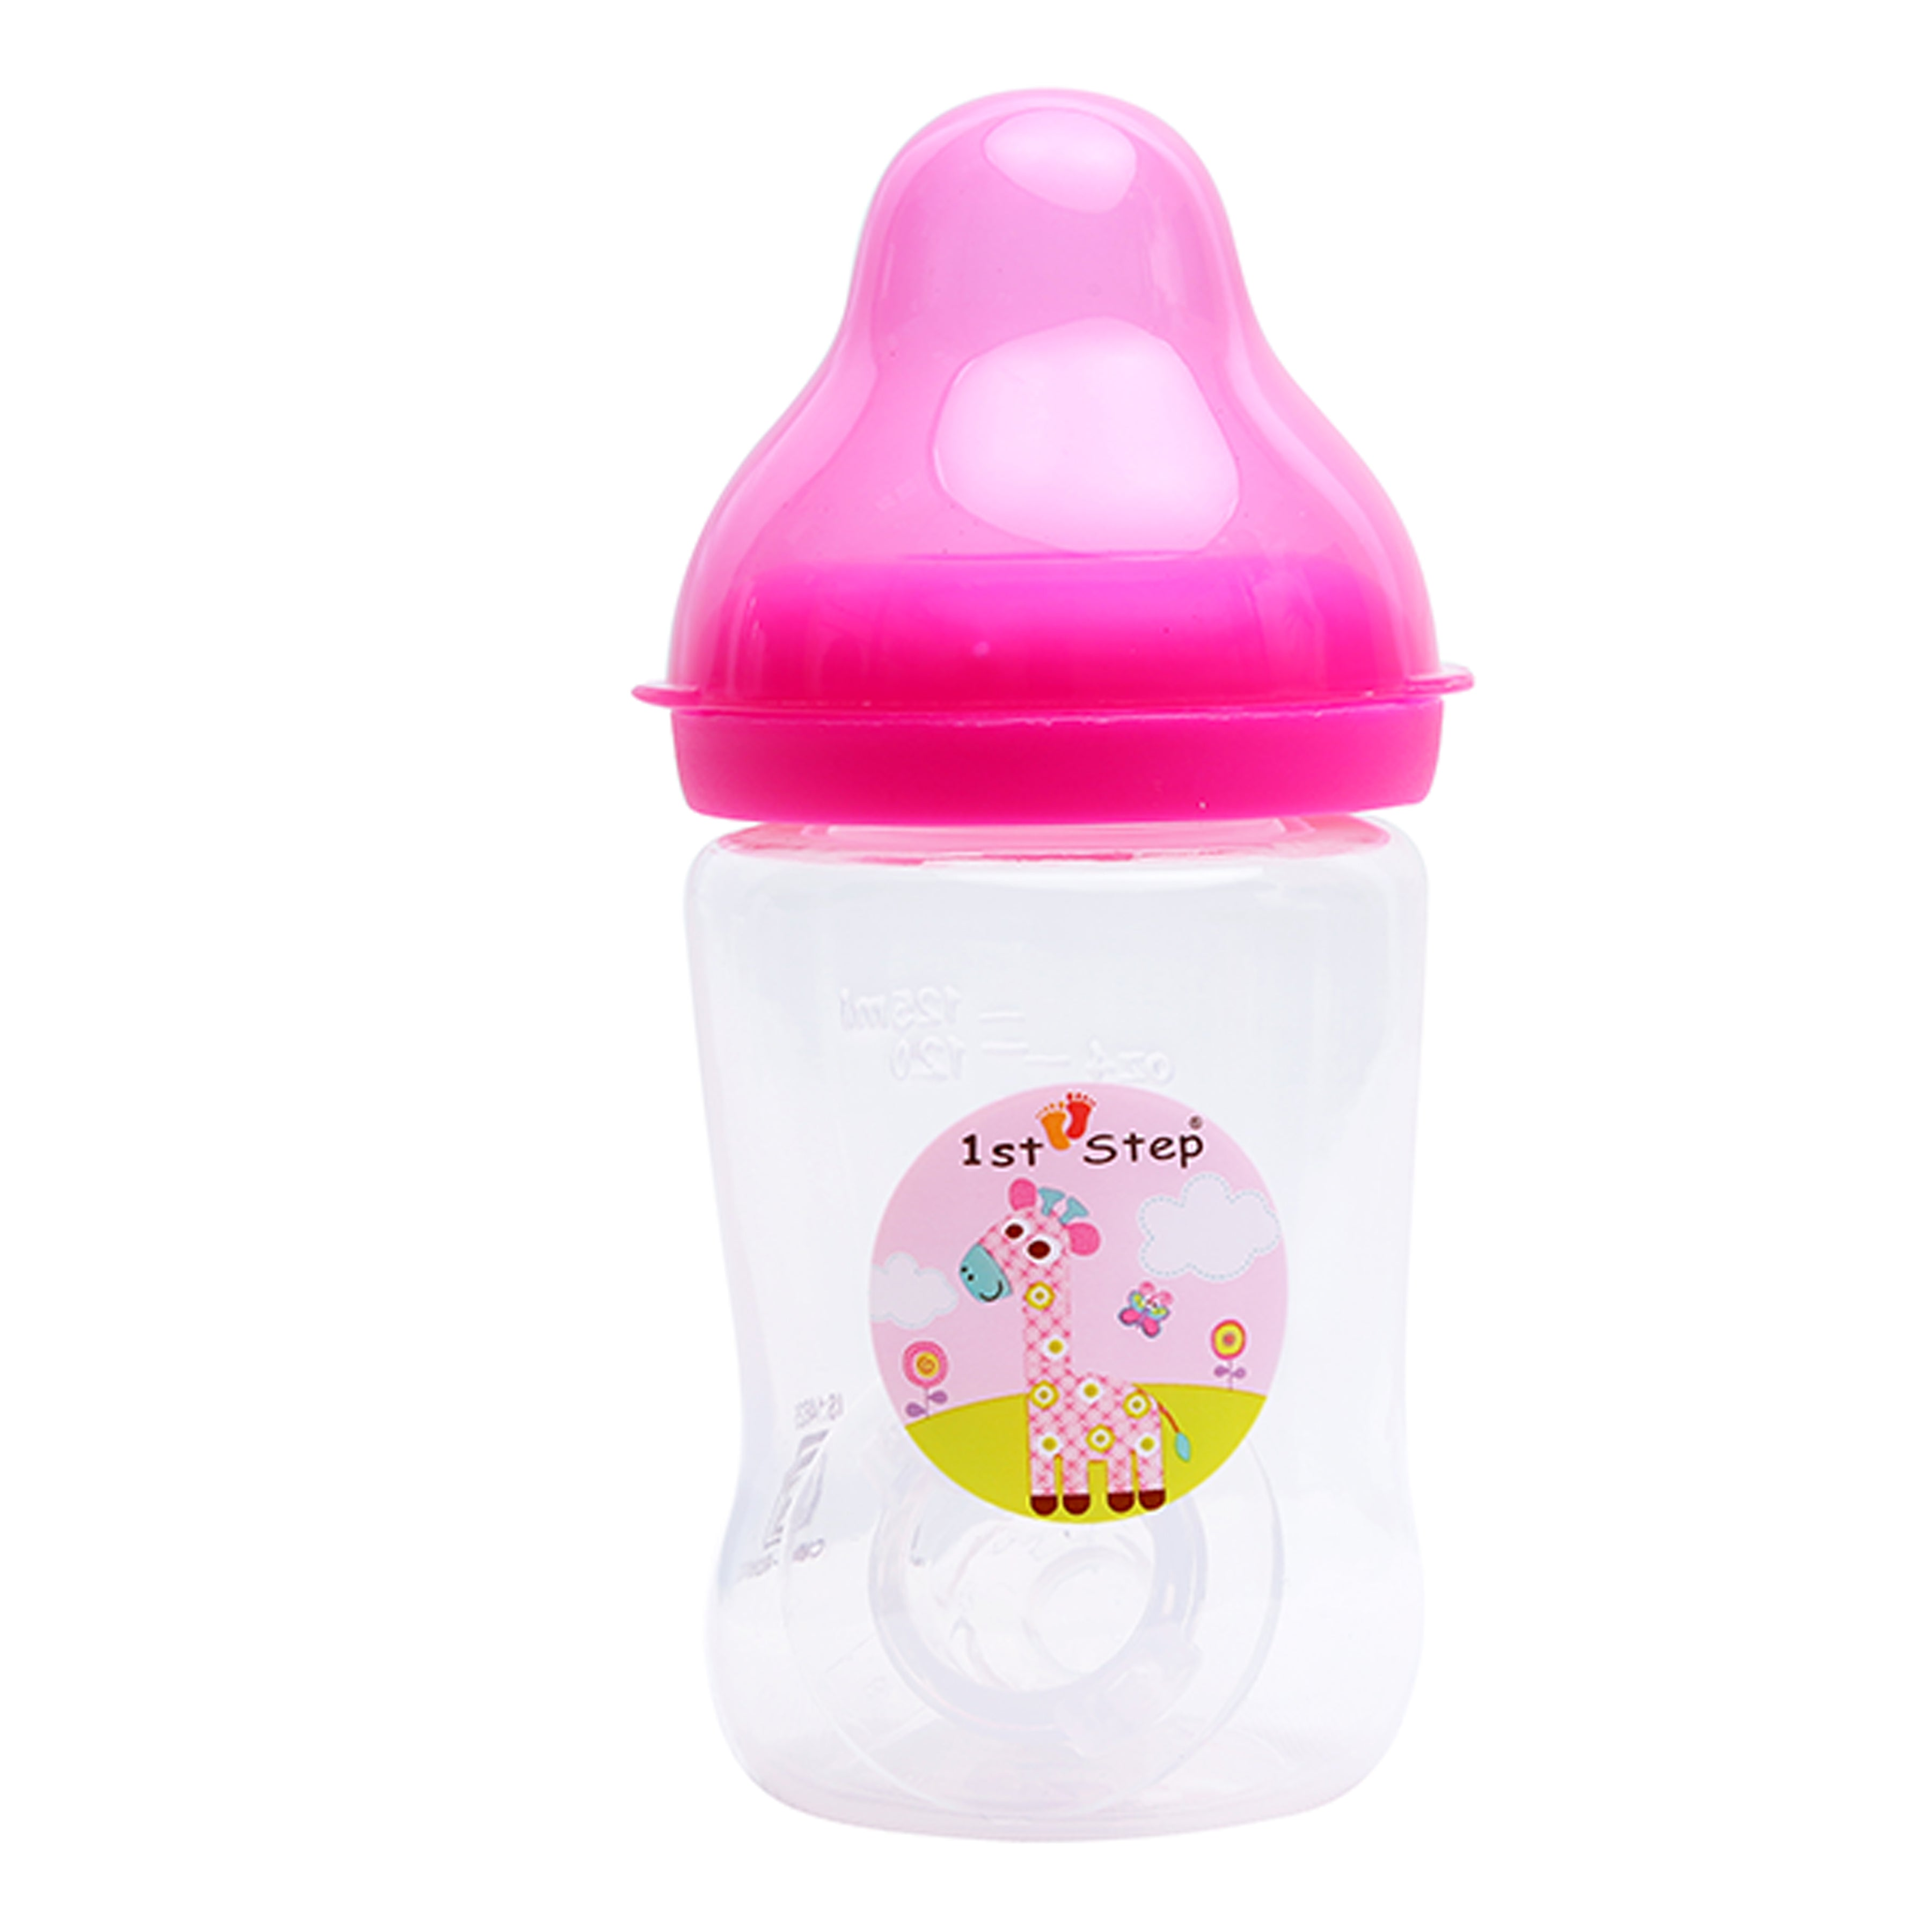 1st Step 125ml BPA Free Polypropylene Feeding Bottle - Pink